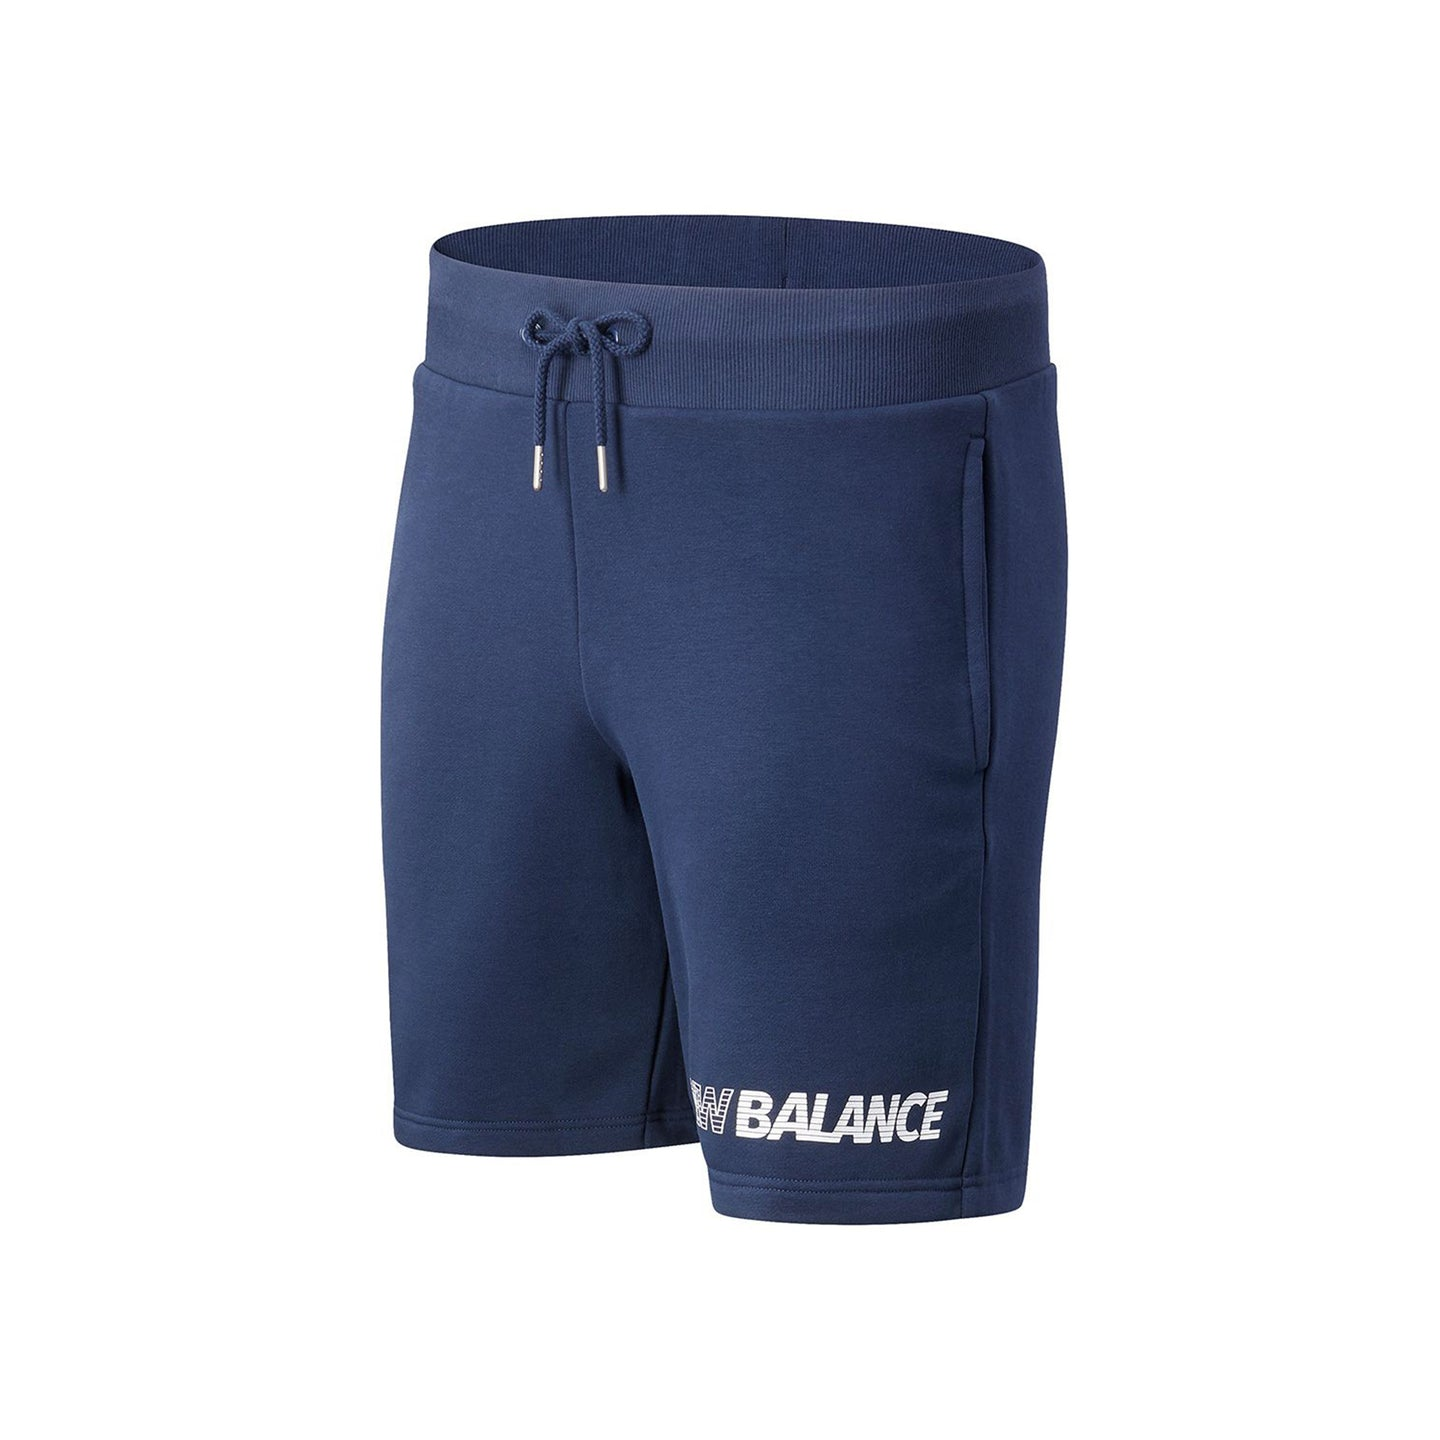 Quần Ngắn Nam New Balance Essentials Speed Shorts